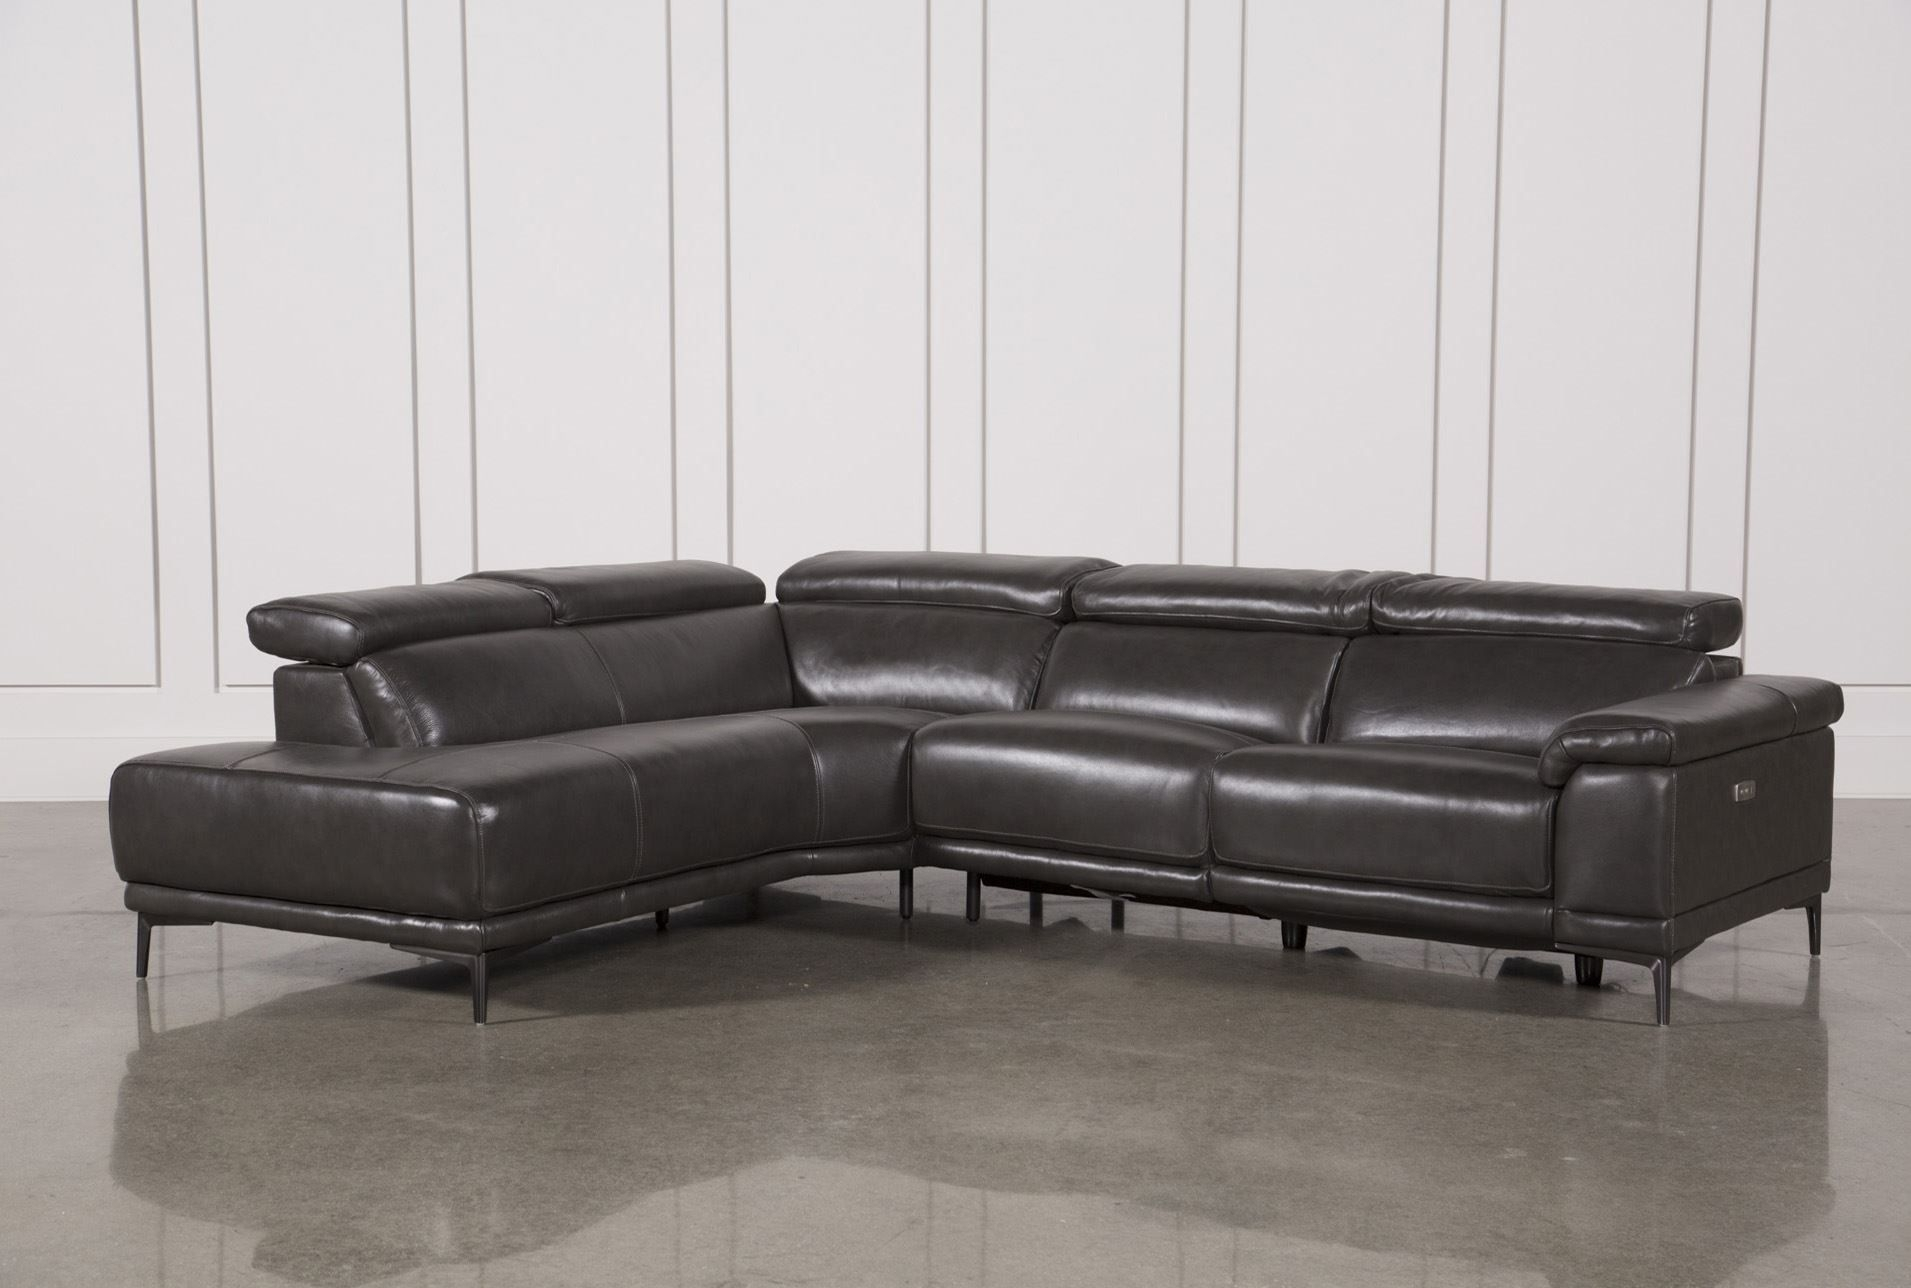 Tatum Dark Grey 2 Piece Sectional W/laf Chaise | Living Room inside Marcus Grey 6 Piece Sectionals With  Power Headrest & Usb (Image 29 of 30)